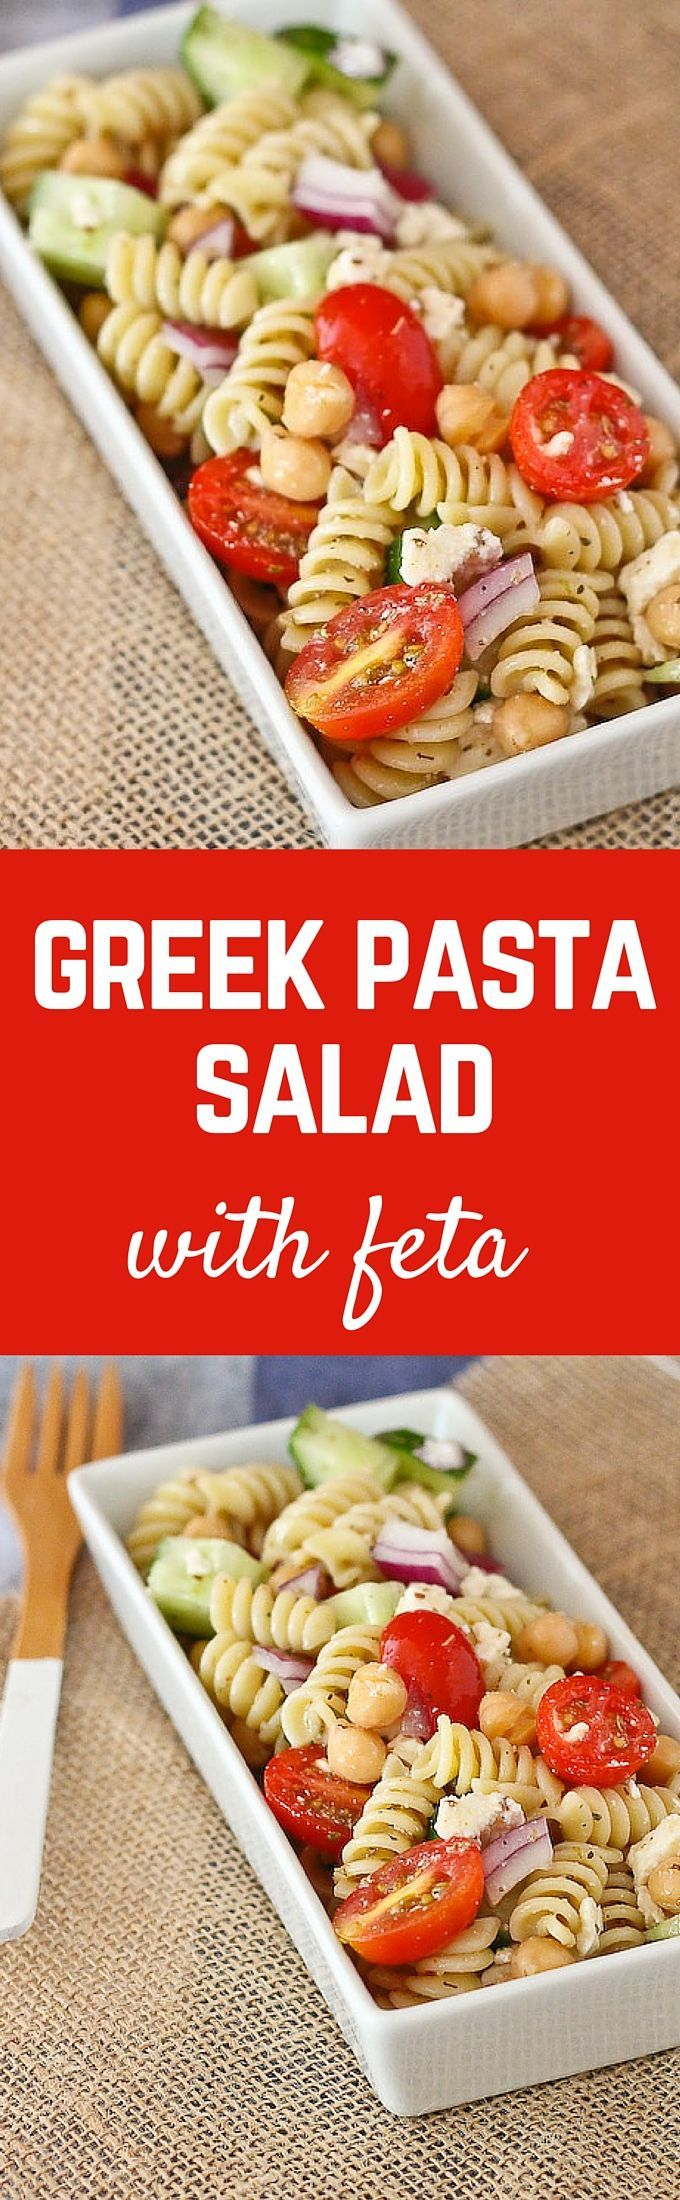 Greek Pasta Salad with Feta - this is a easy, filling, and delicious pasta salad that is perfect for picnics and bbqs. Get the easy recipe on http://RachelCooks.com!